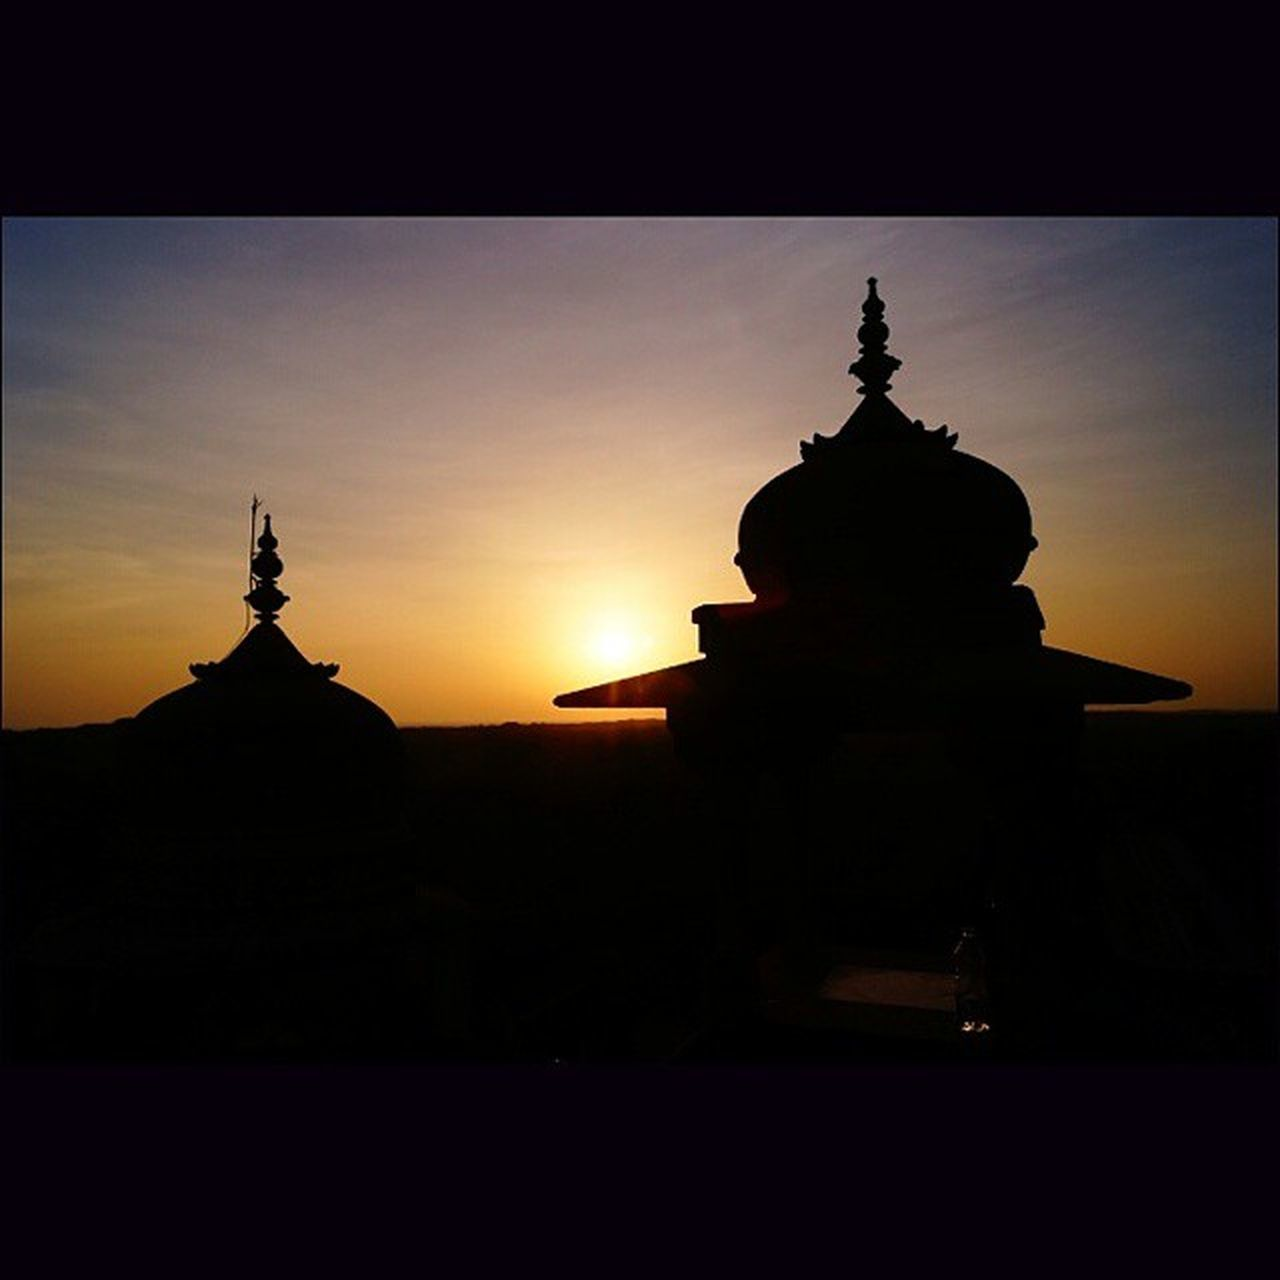 The mesmerizing sunset at the most well known palace. VijayVilasPalace Sunset Noedit Nofilter Mesmerized Wowshot